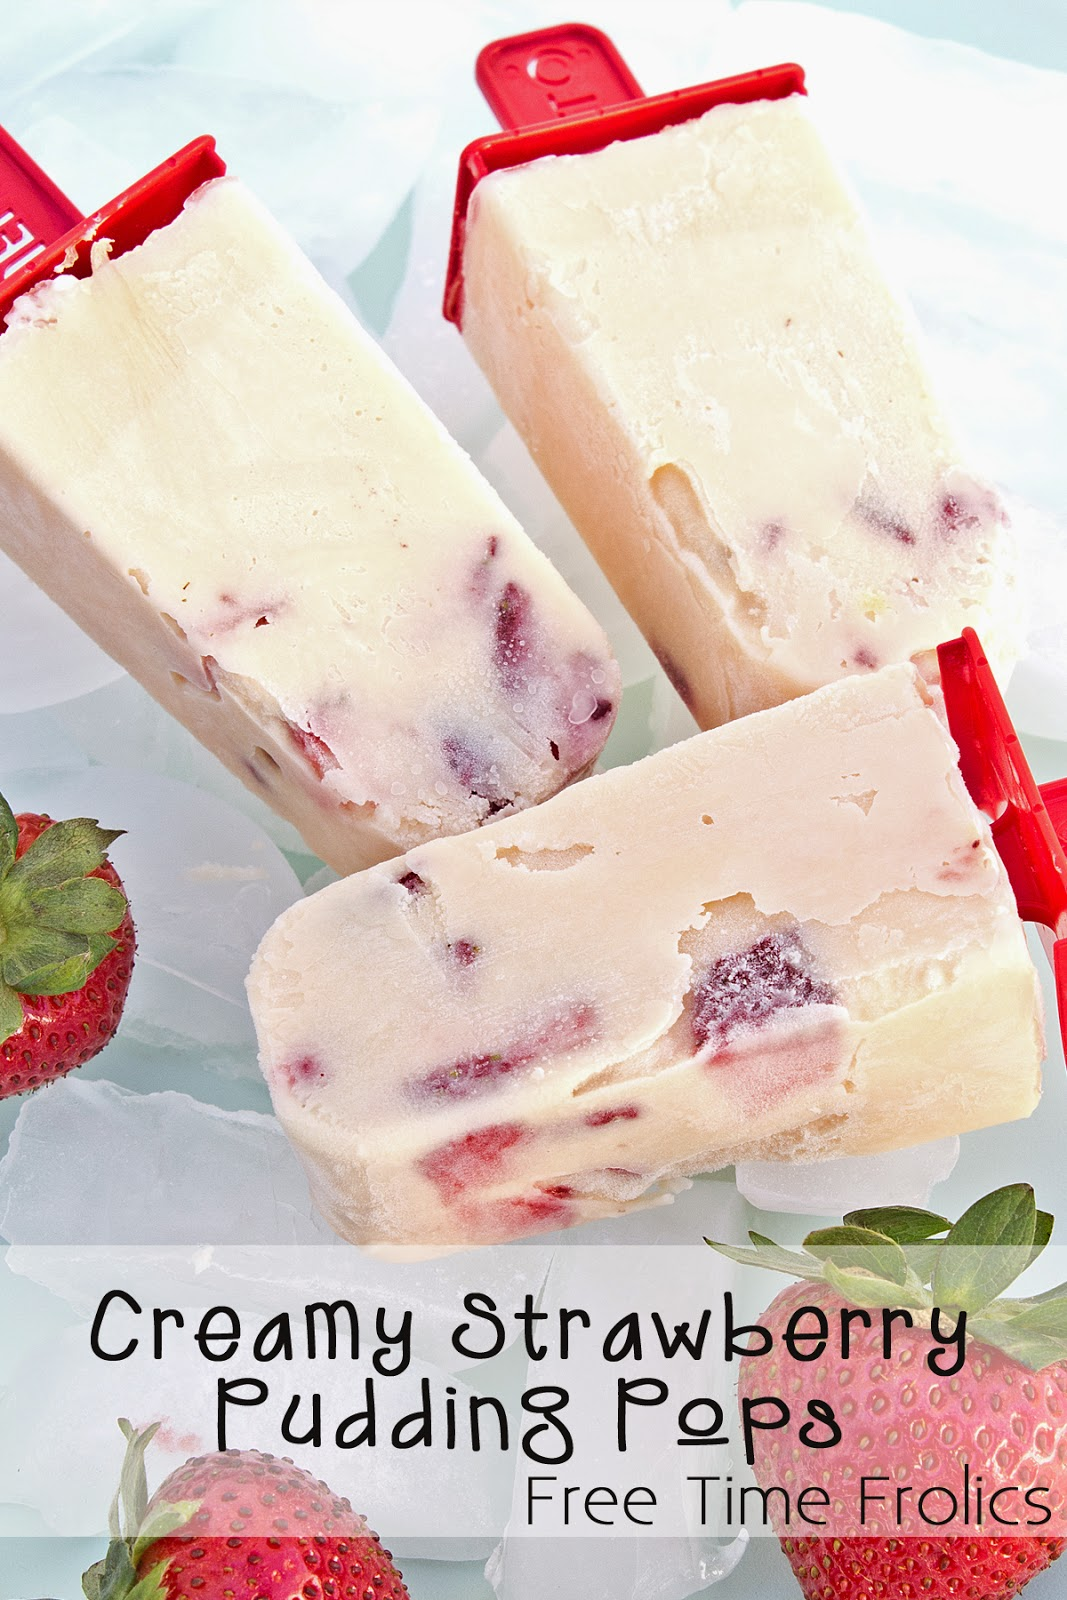 Strawberry Pudding Pops www.freetimefrolics.com